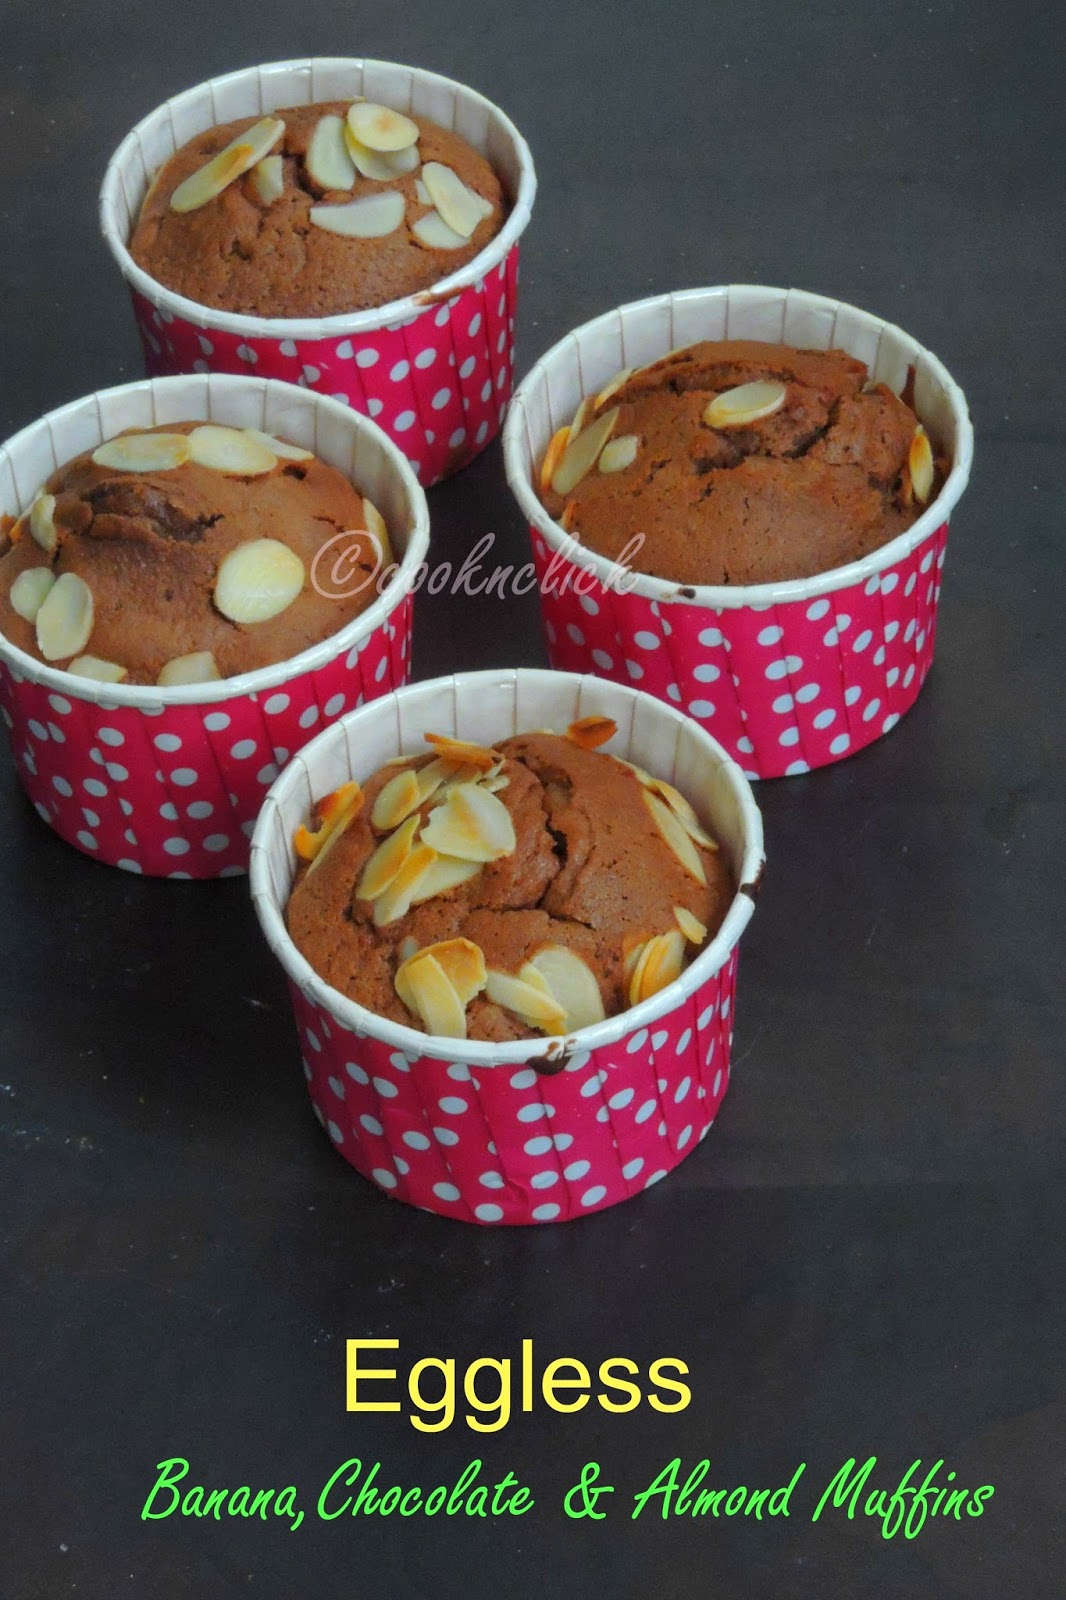 Eggless Banana,Chocolate & Almond muffins